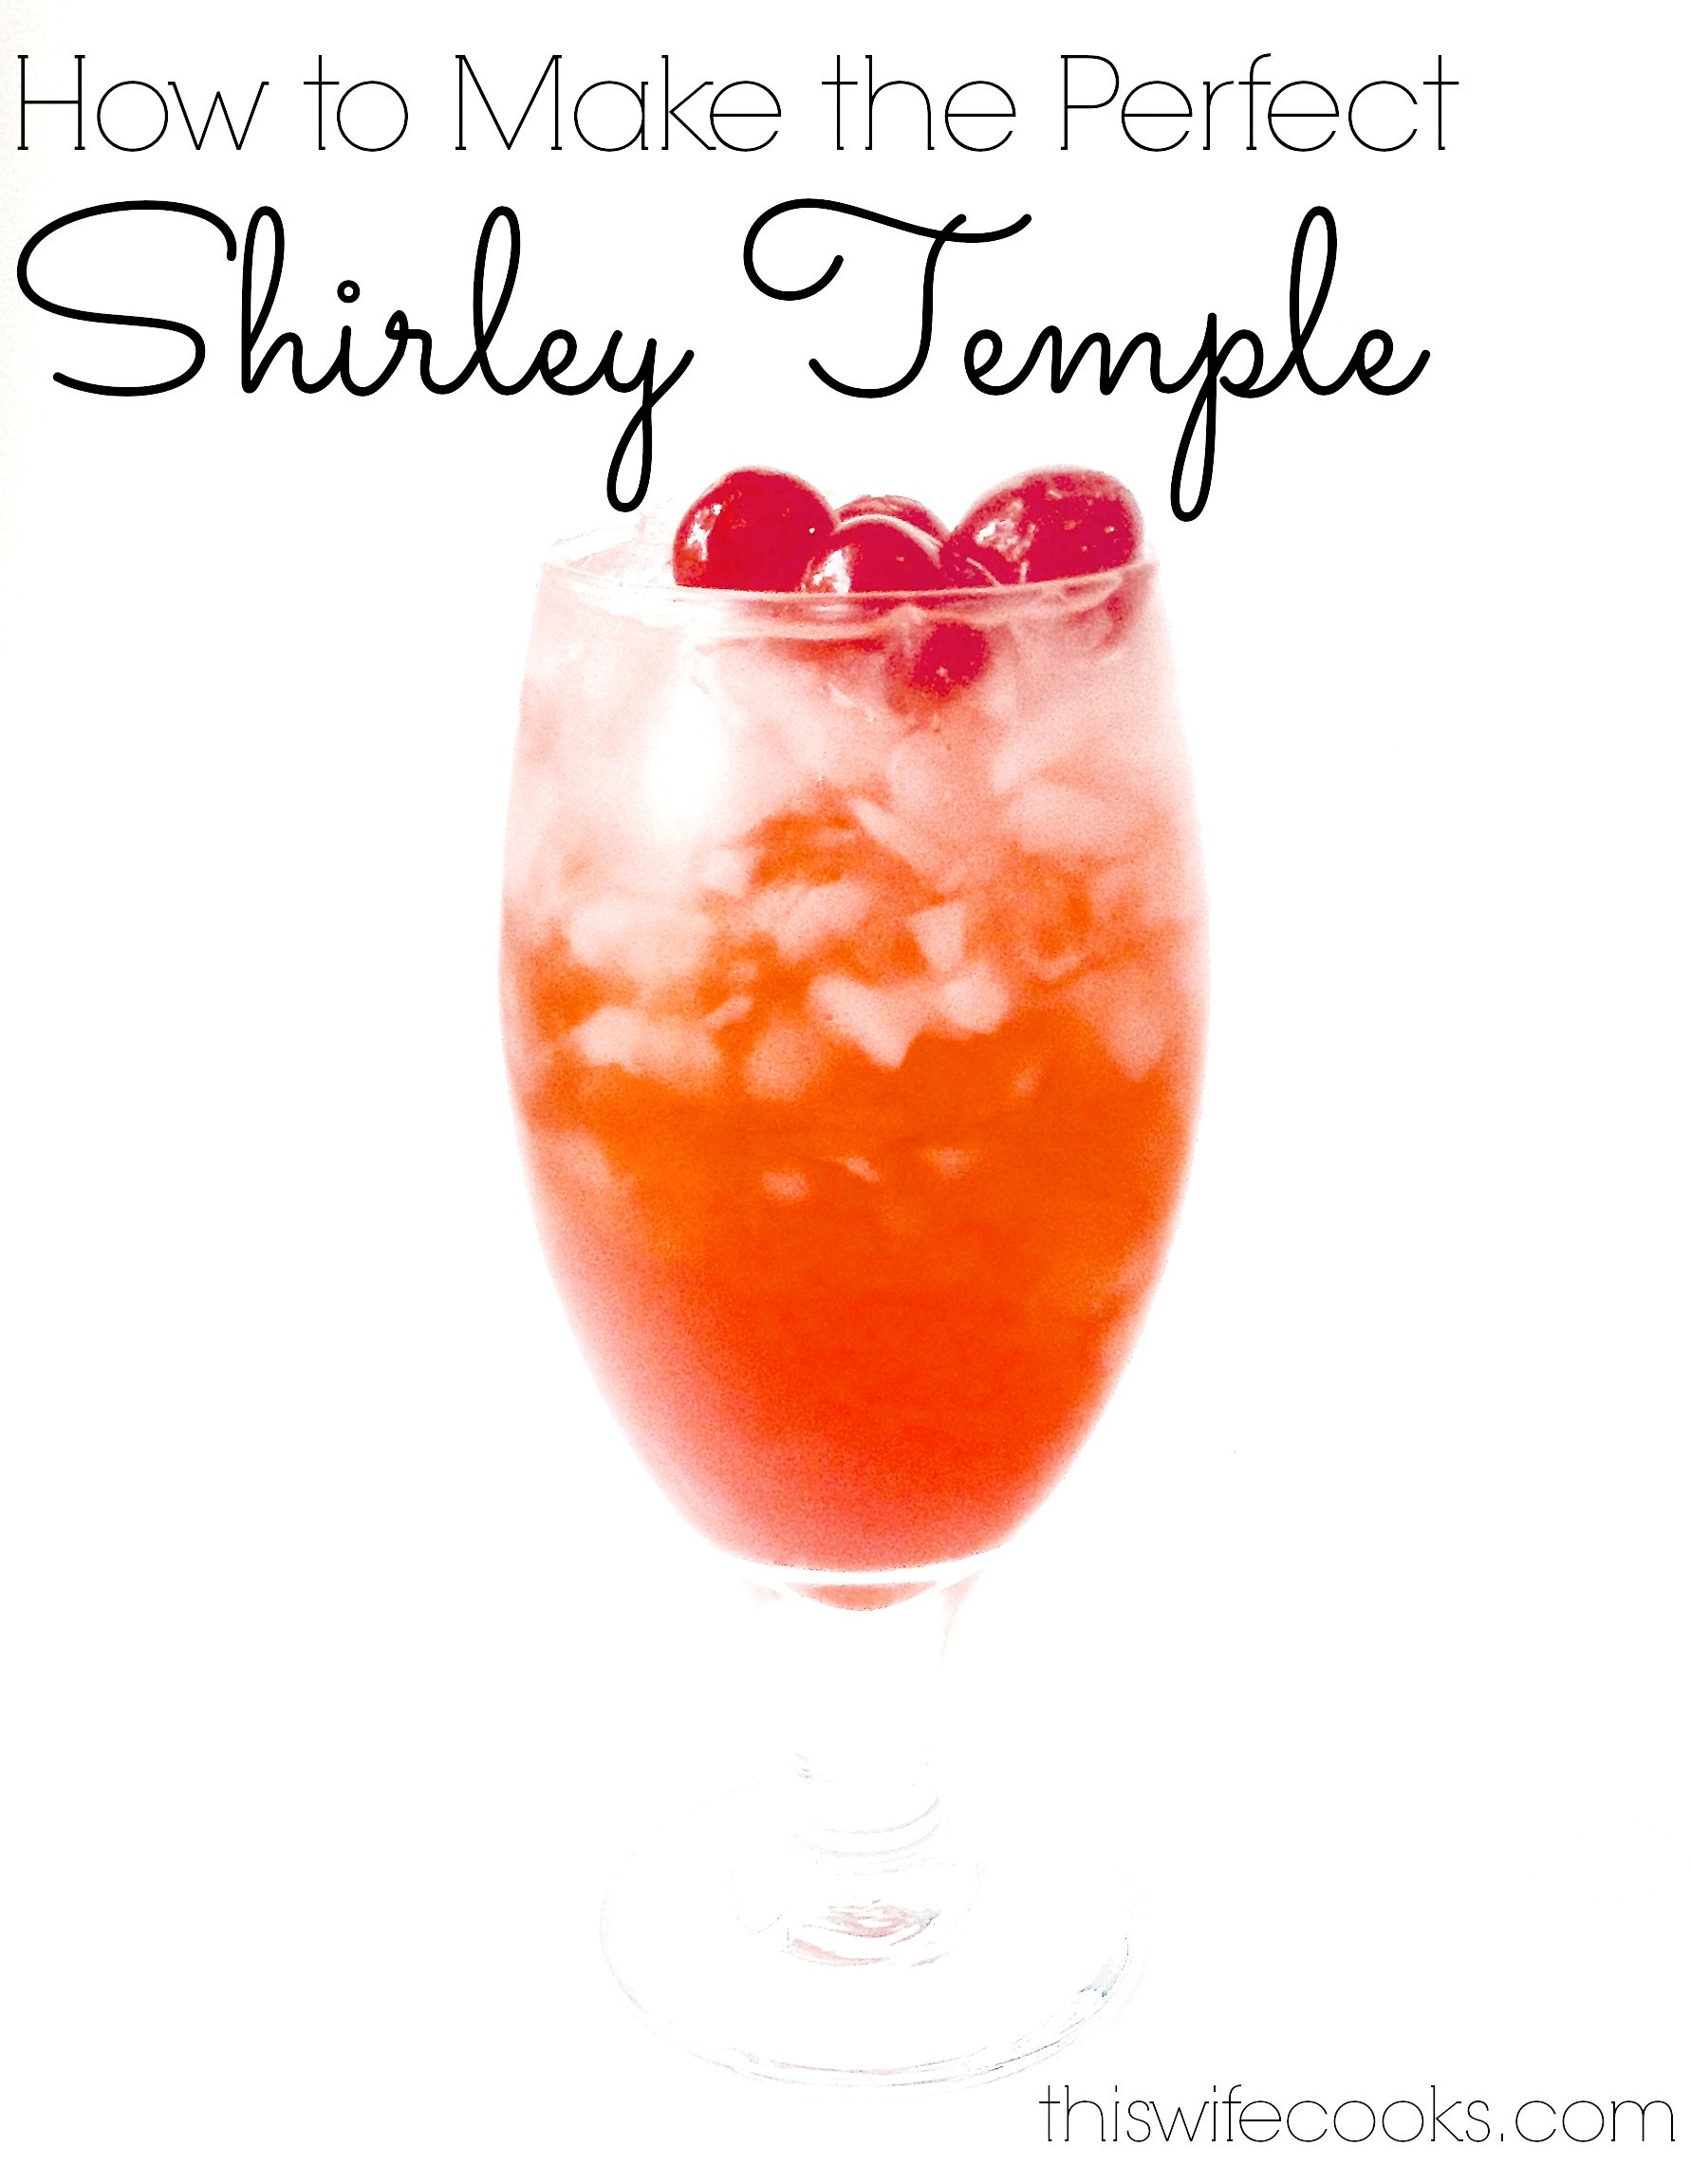 How to Make the Perfect Shirley Temple - The classic kid cocktail! Only 3 ingredients! via @thiswifecooks